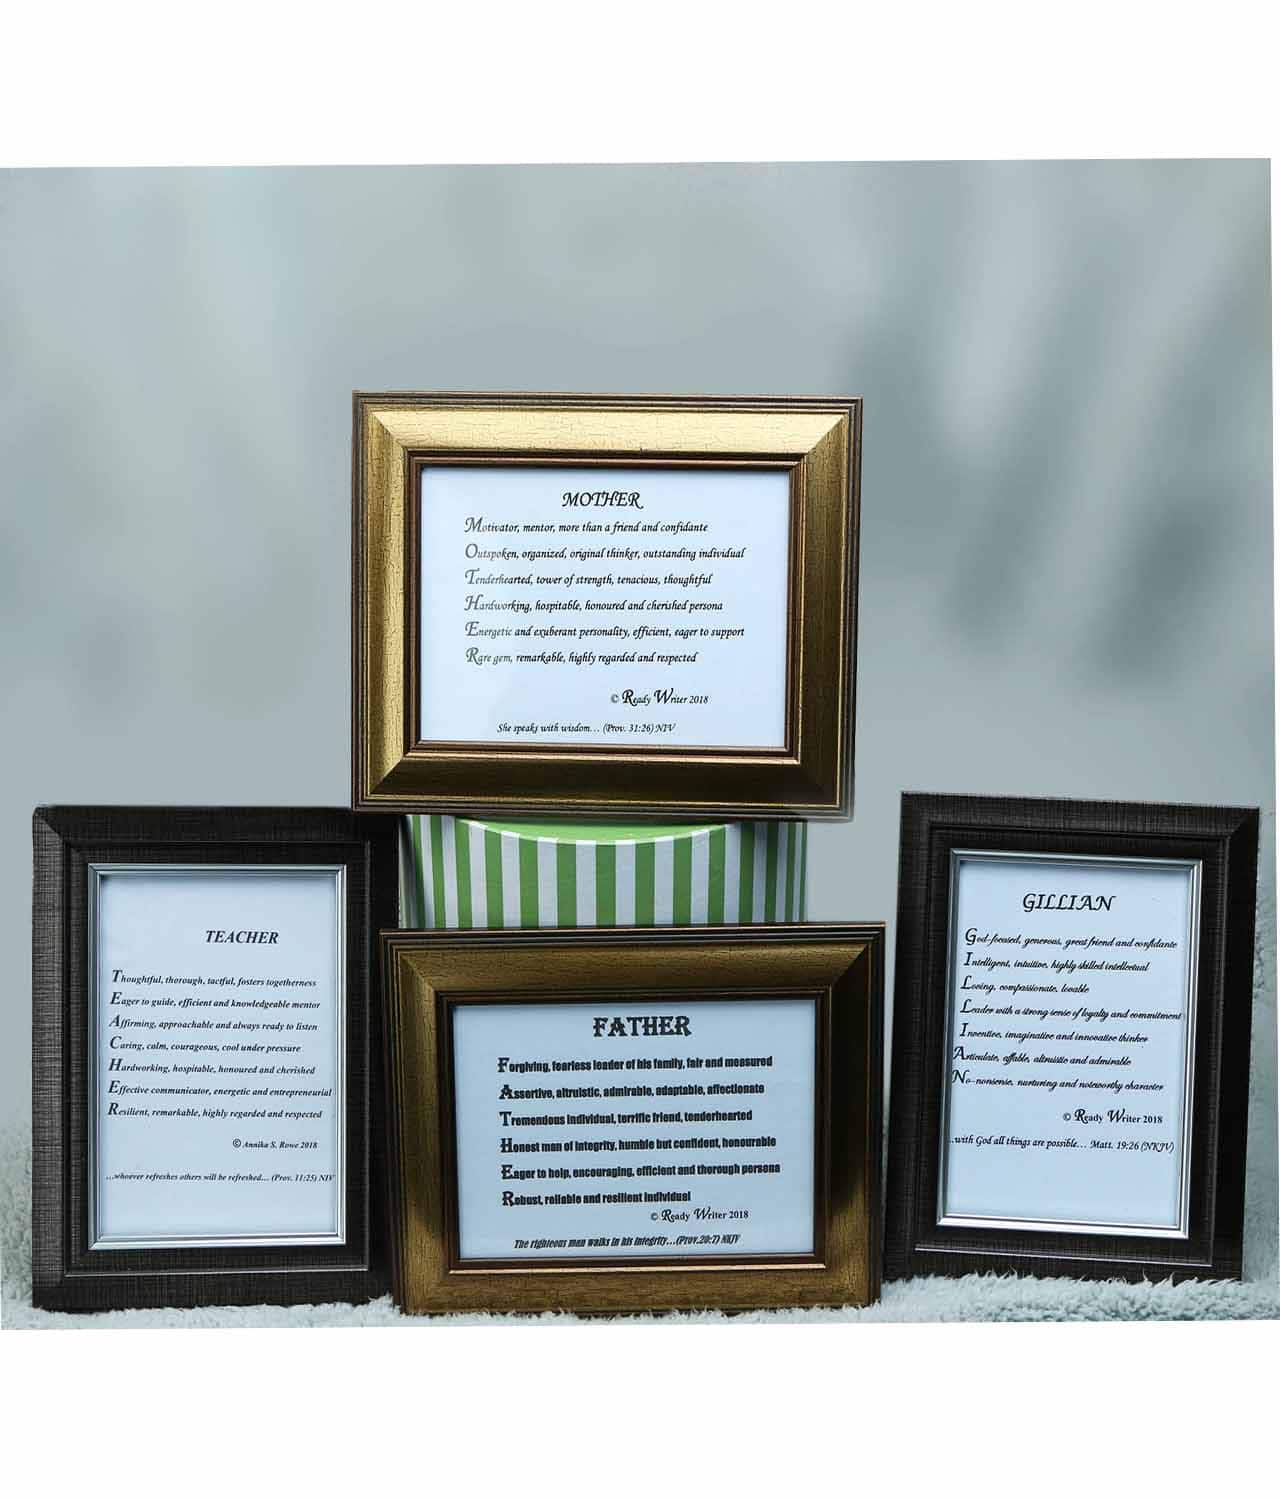 Ready Writer Picture Frames (1pc) - Best Gift - Buy Now!